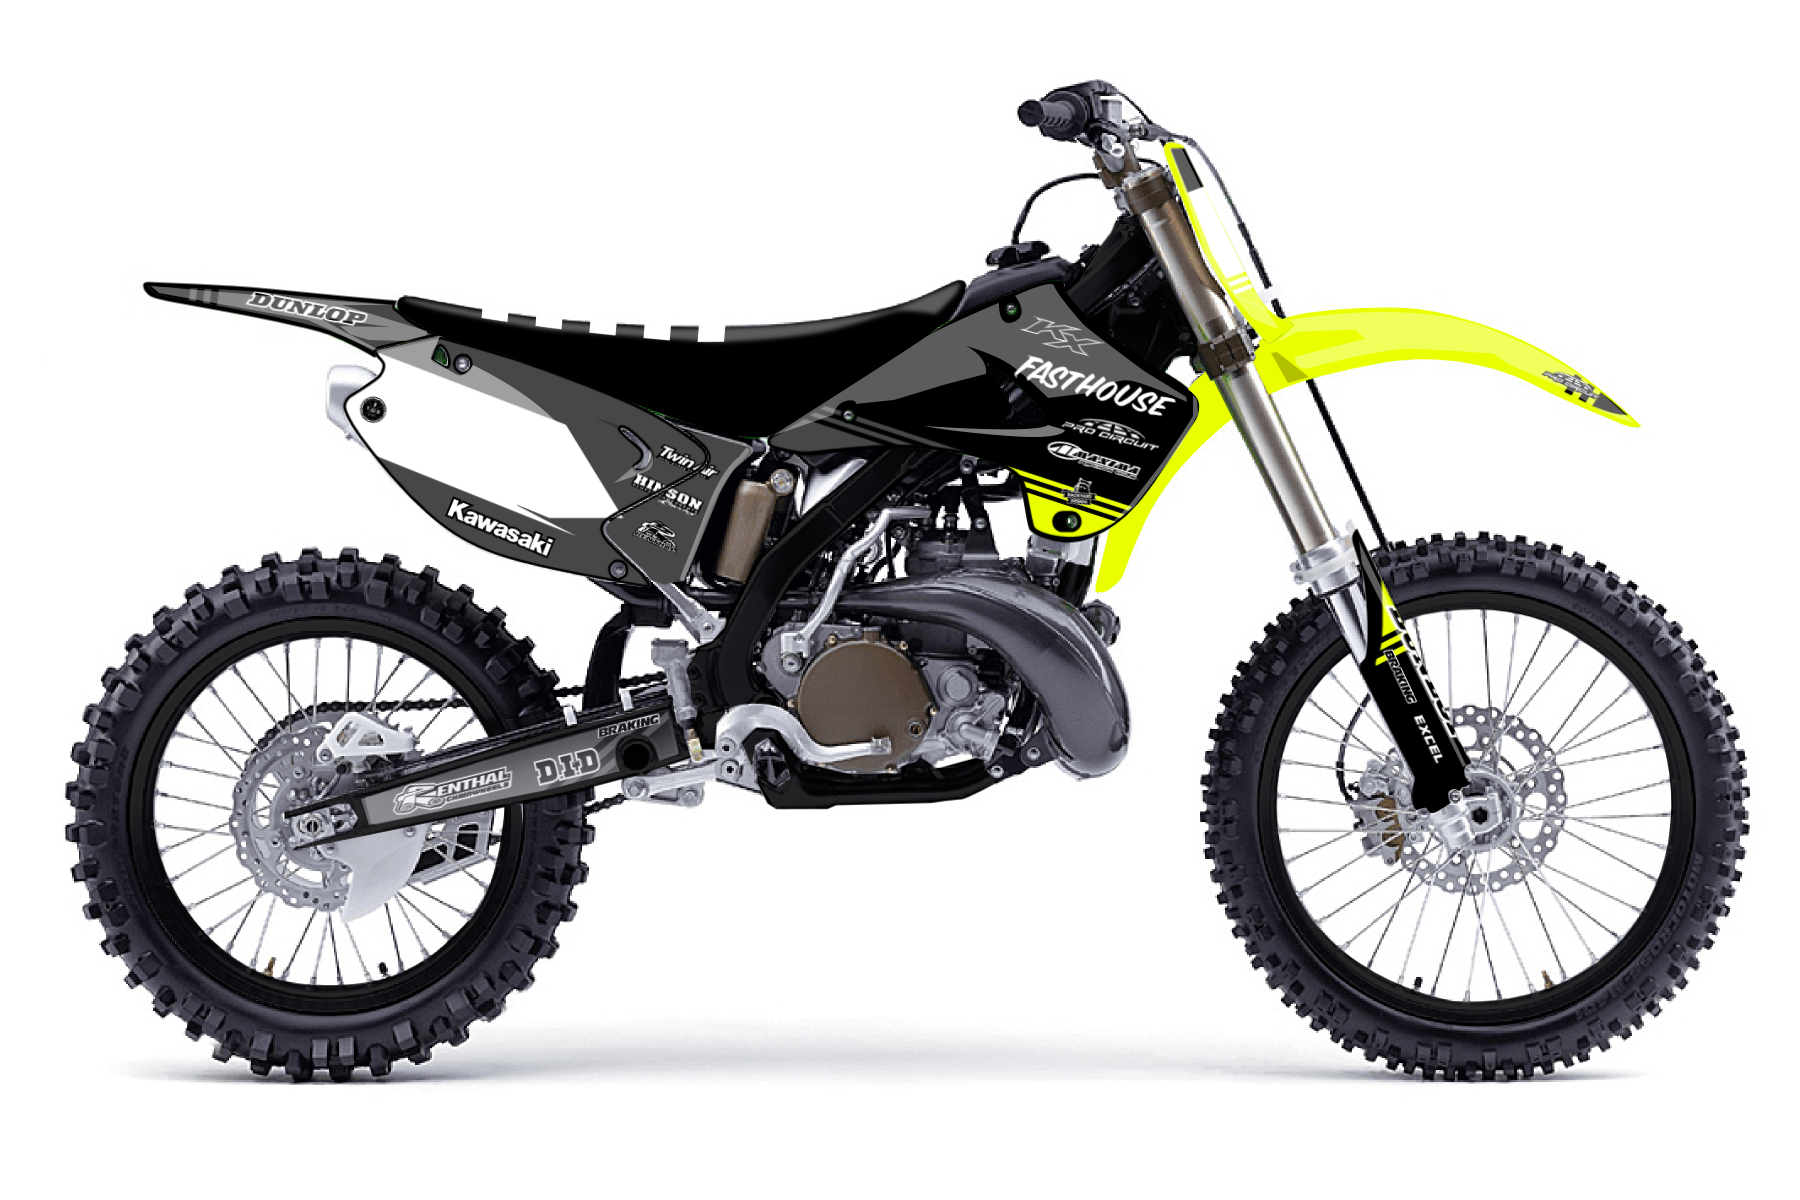 Kawasaki KX125 MX Graphic Kits  The Kawasaki KX 125 is a reliable friend for all those training multiple times on the off road tracks to become a better and more professional rider.